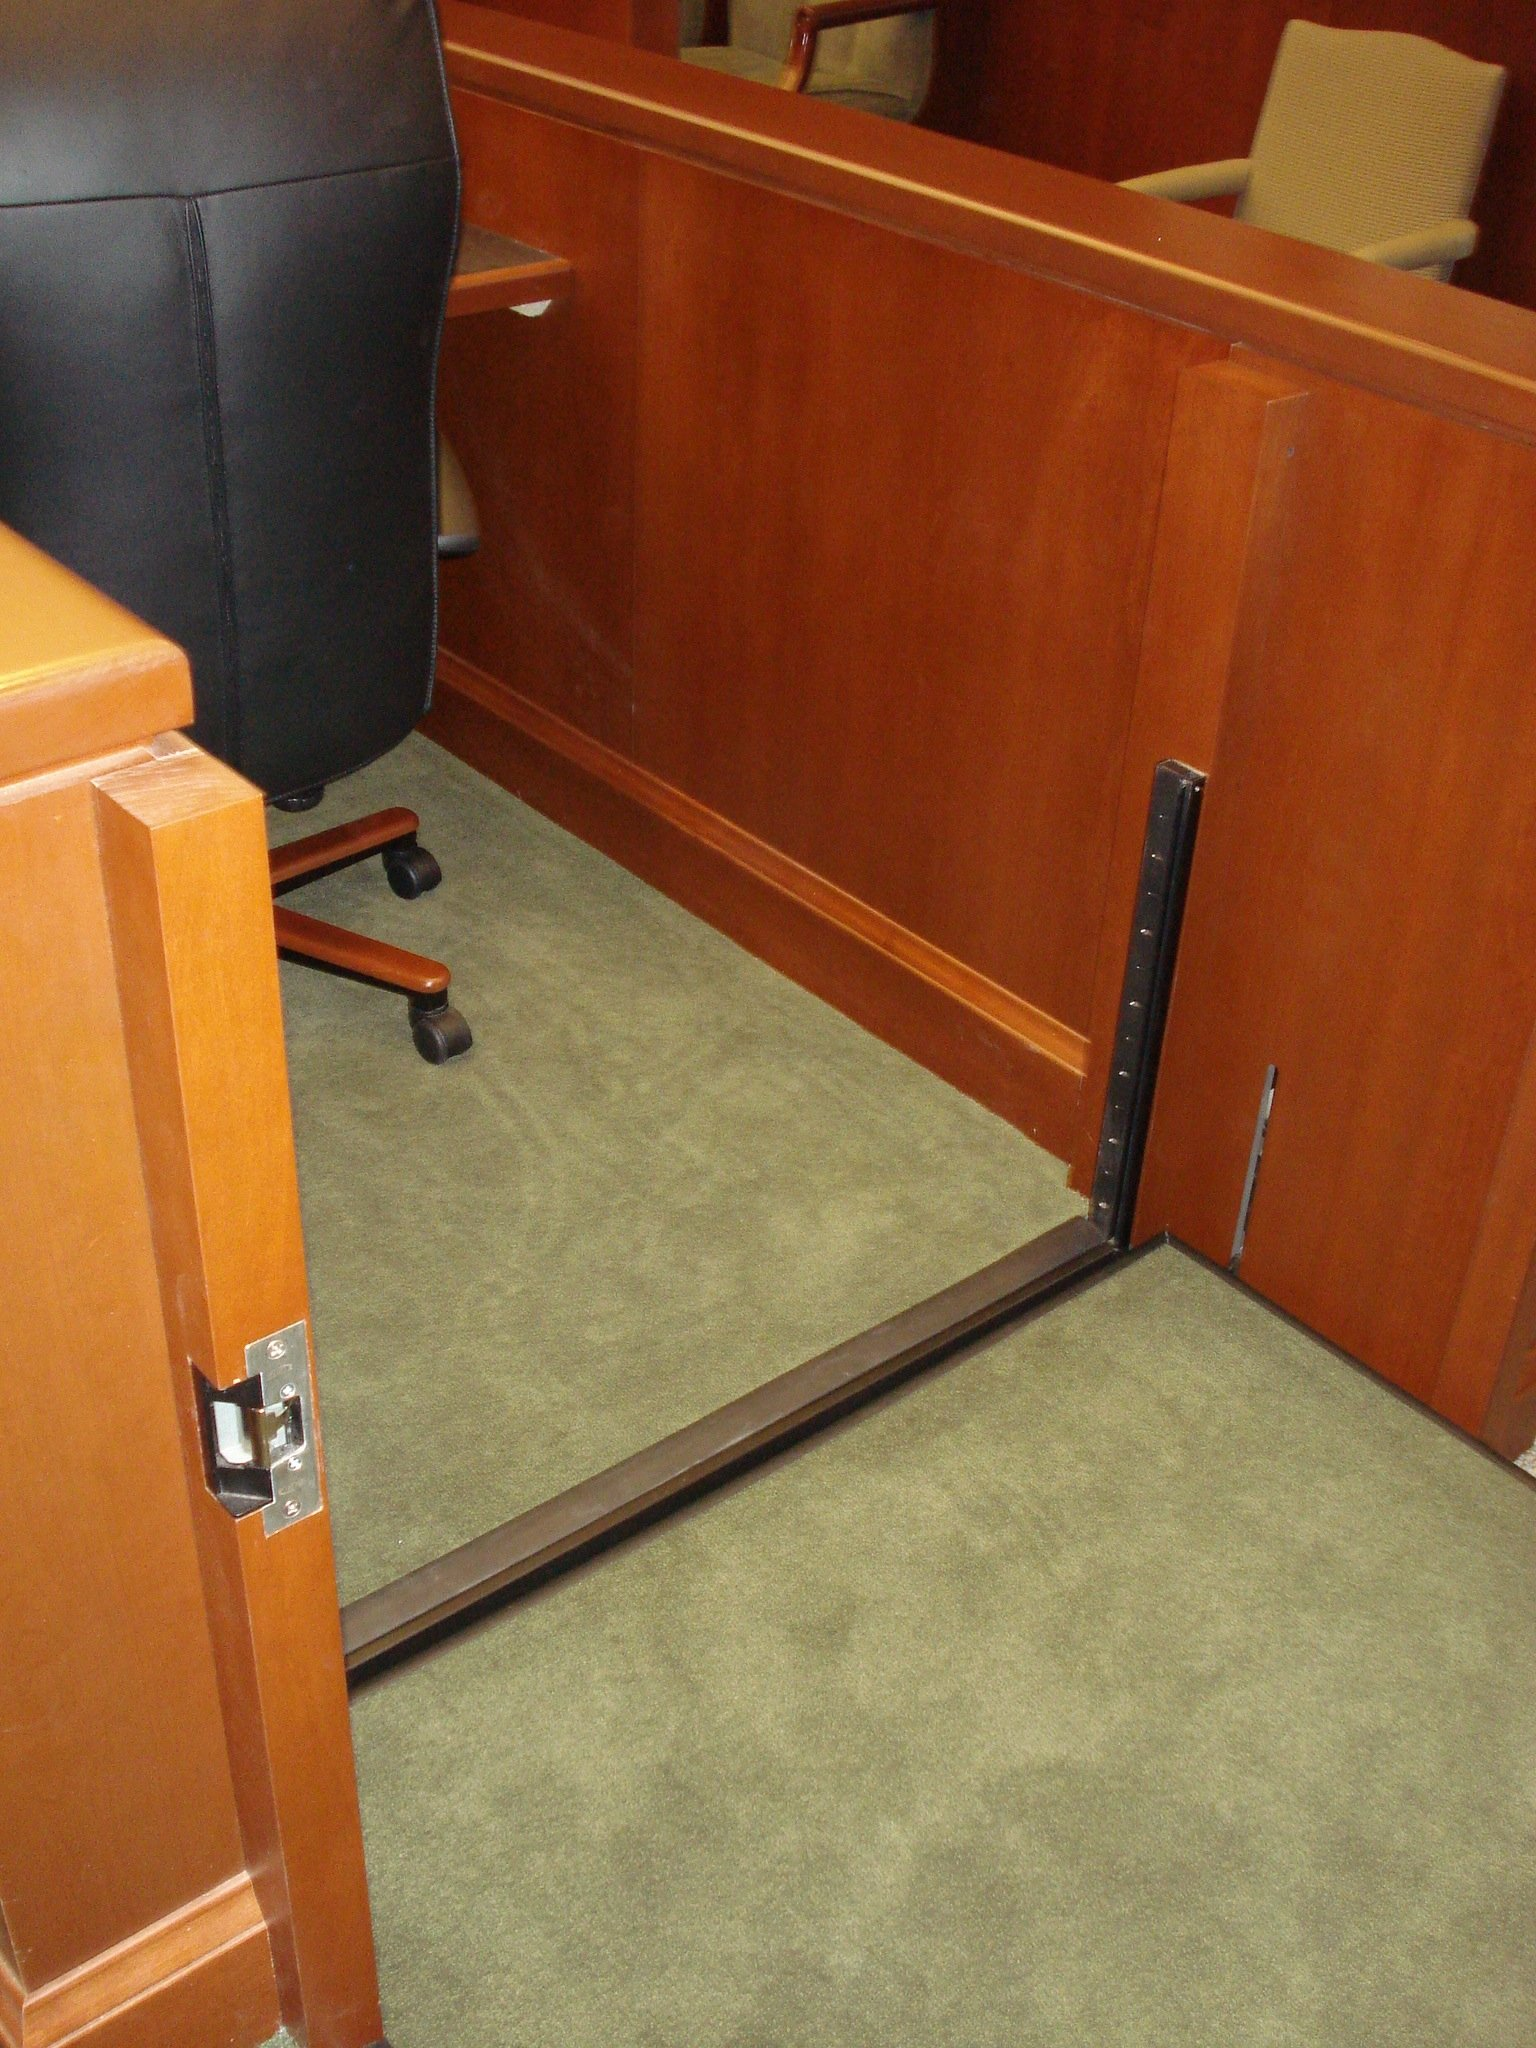 View from inside the lift with the lift positioned at the witnes level.  The roll-up barrier is down making the desk and chair accessible.